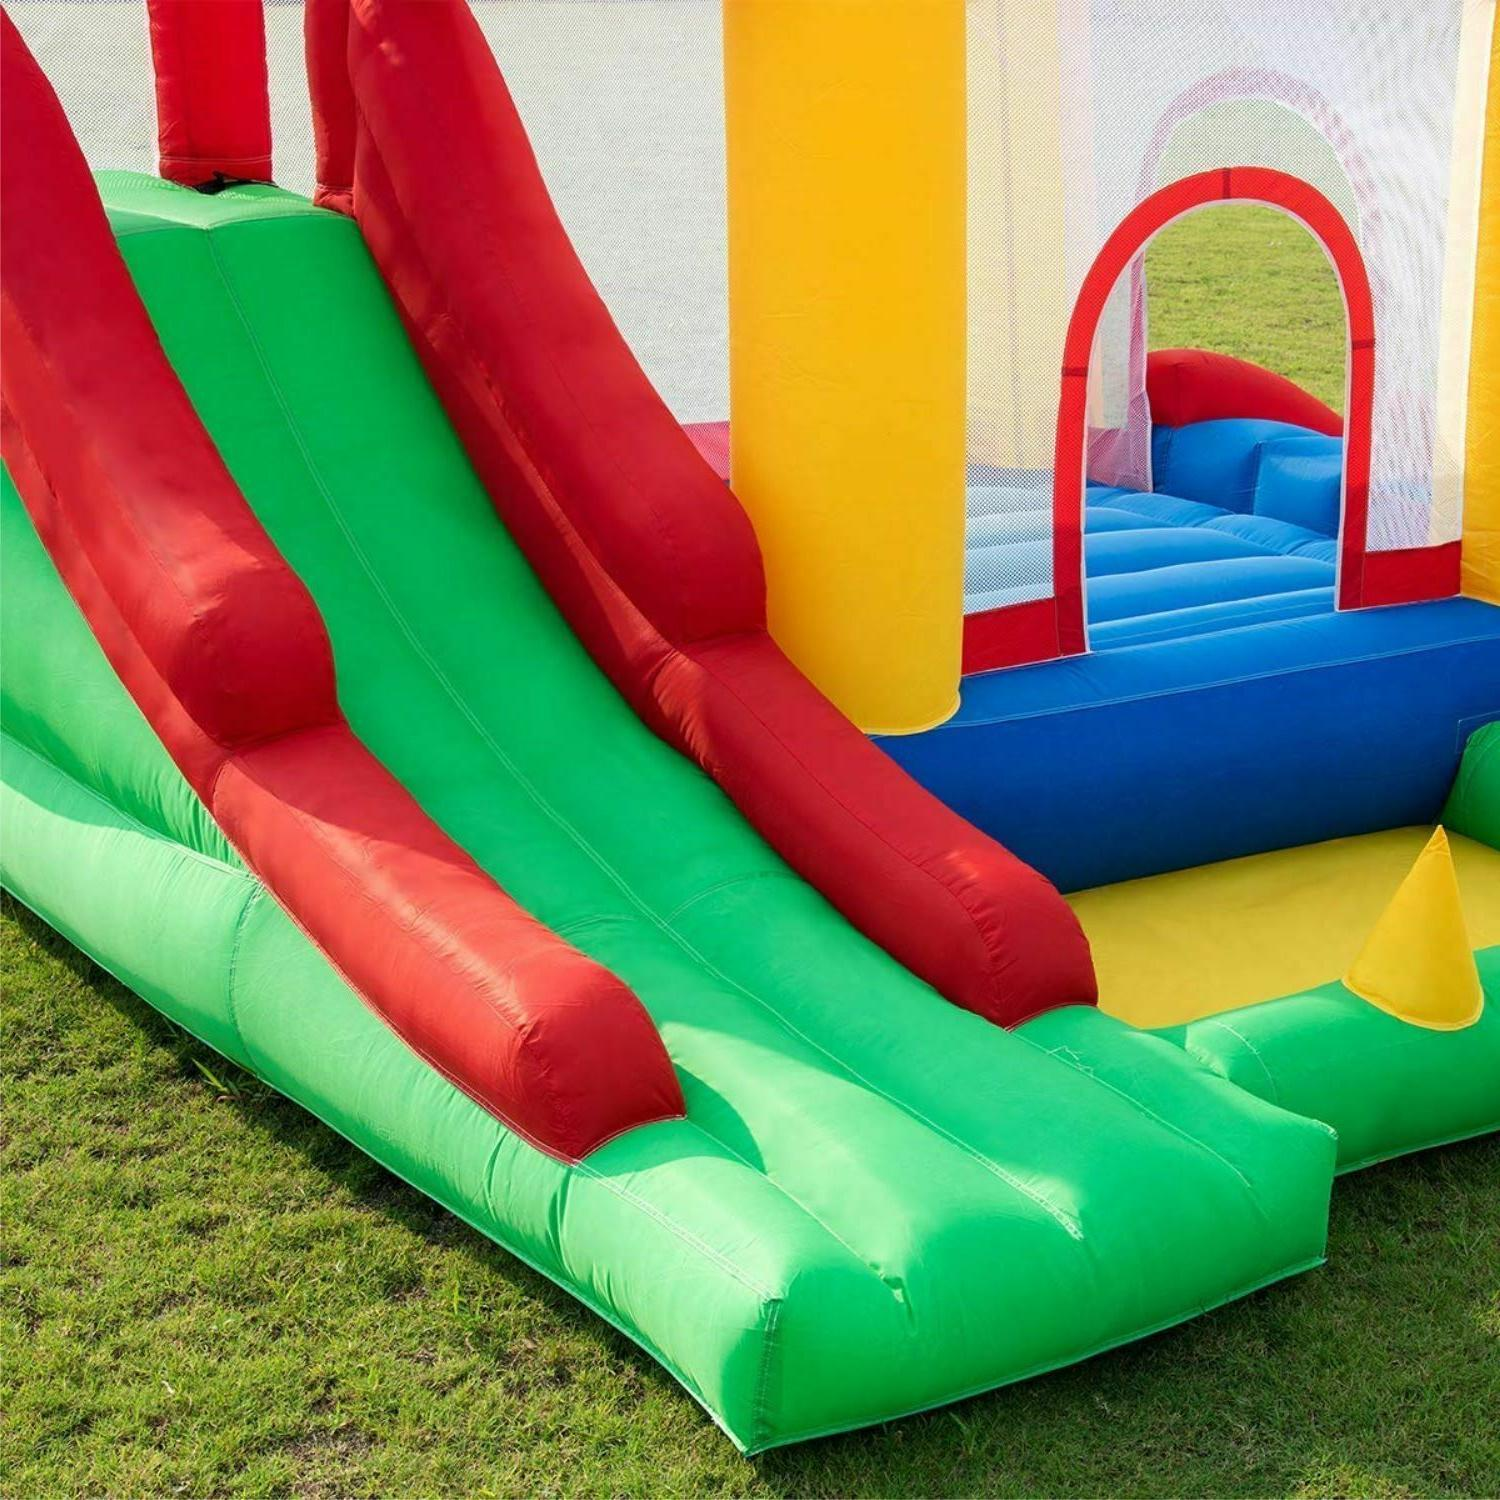 Commercial Inflatable Combo House Kids Slide Jumping Playhouse New